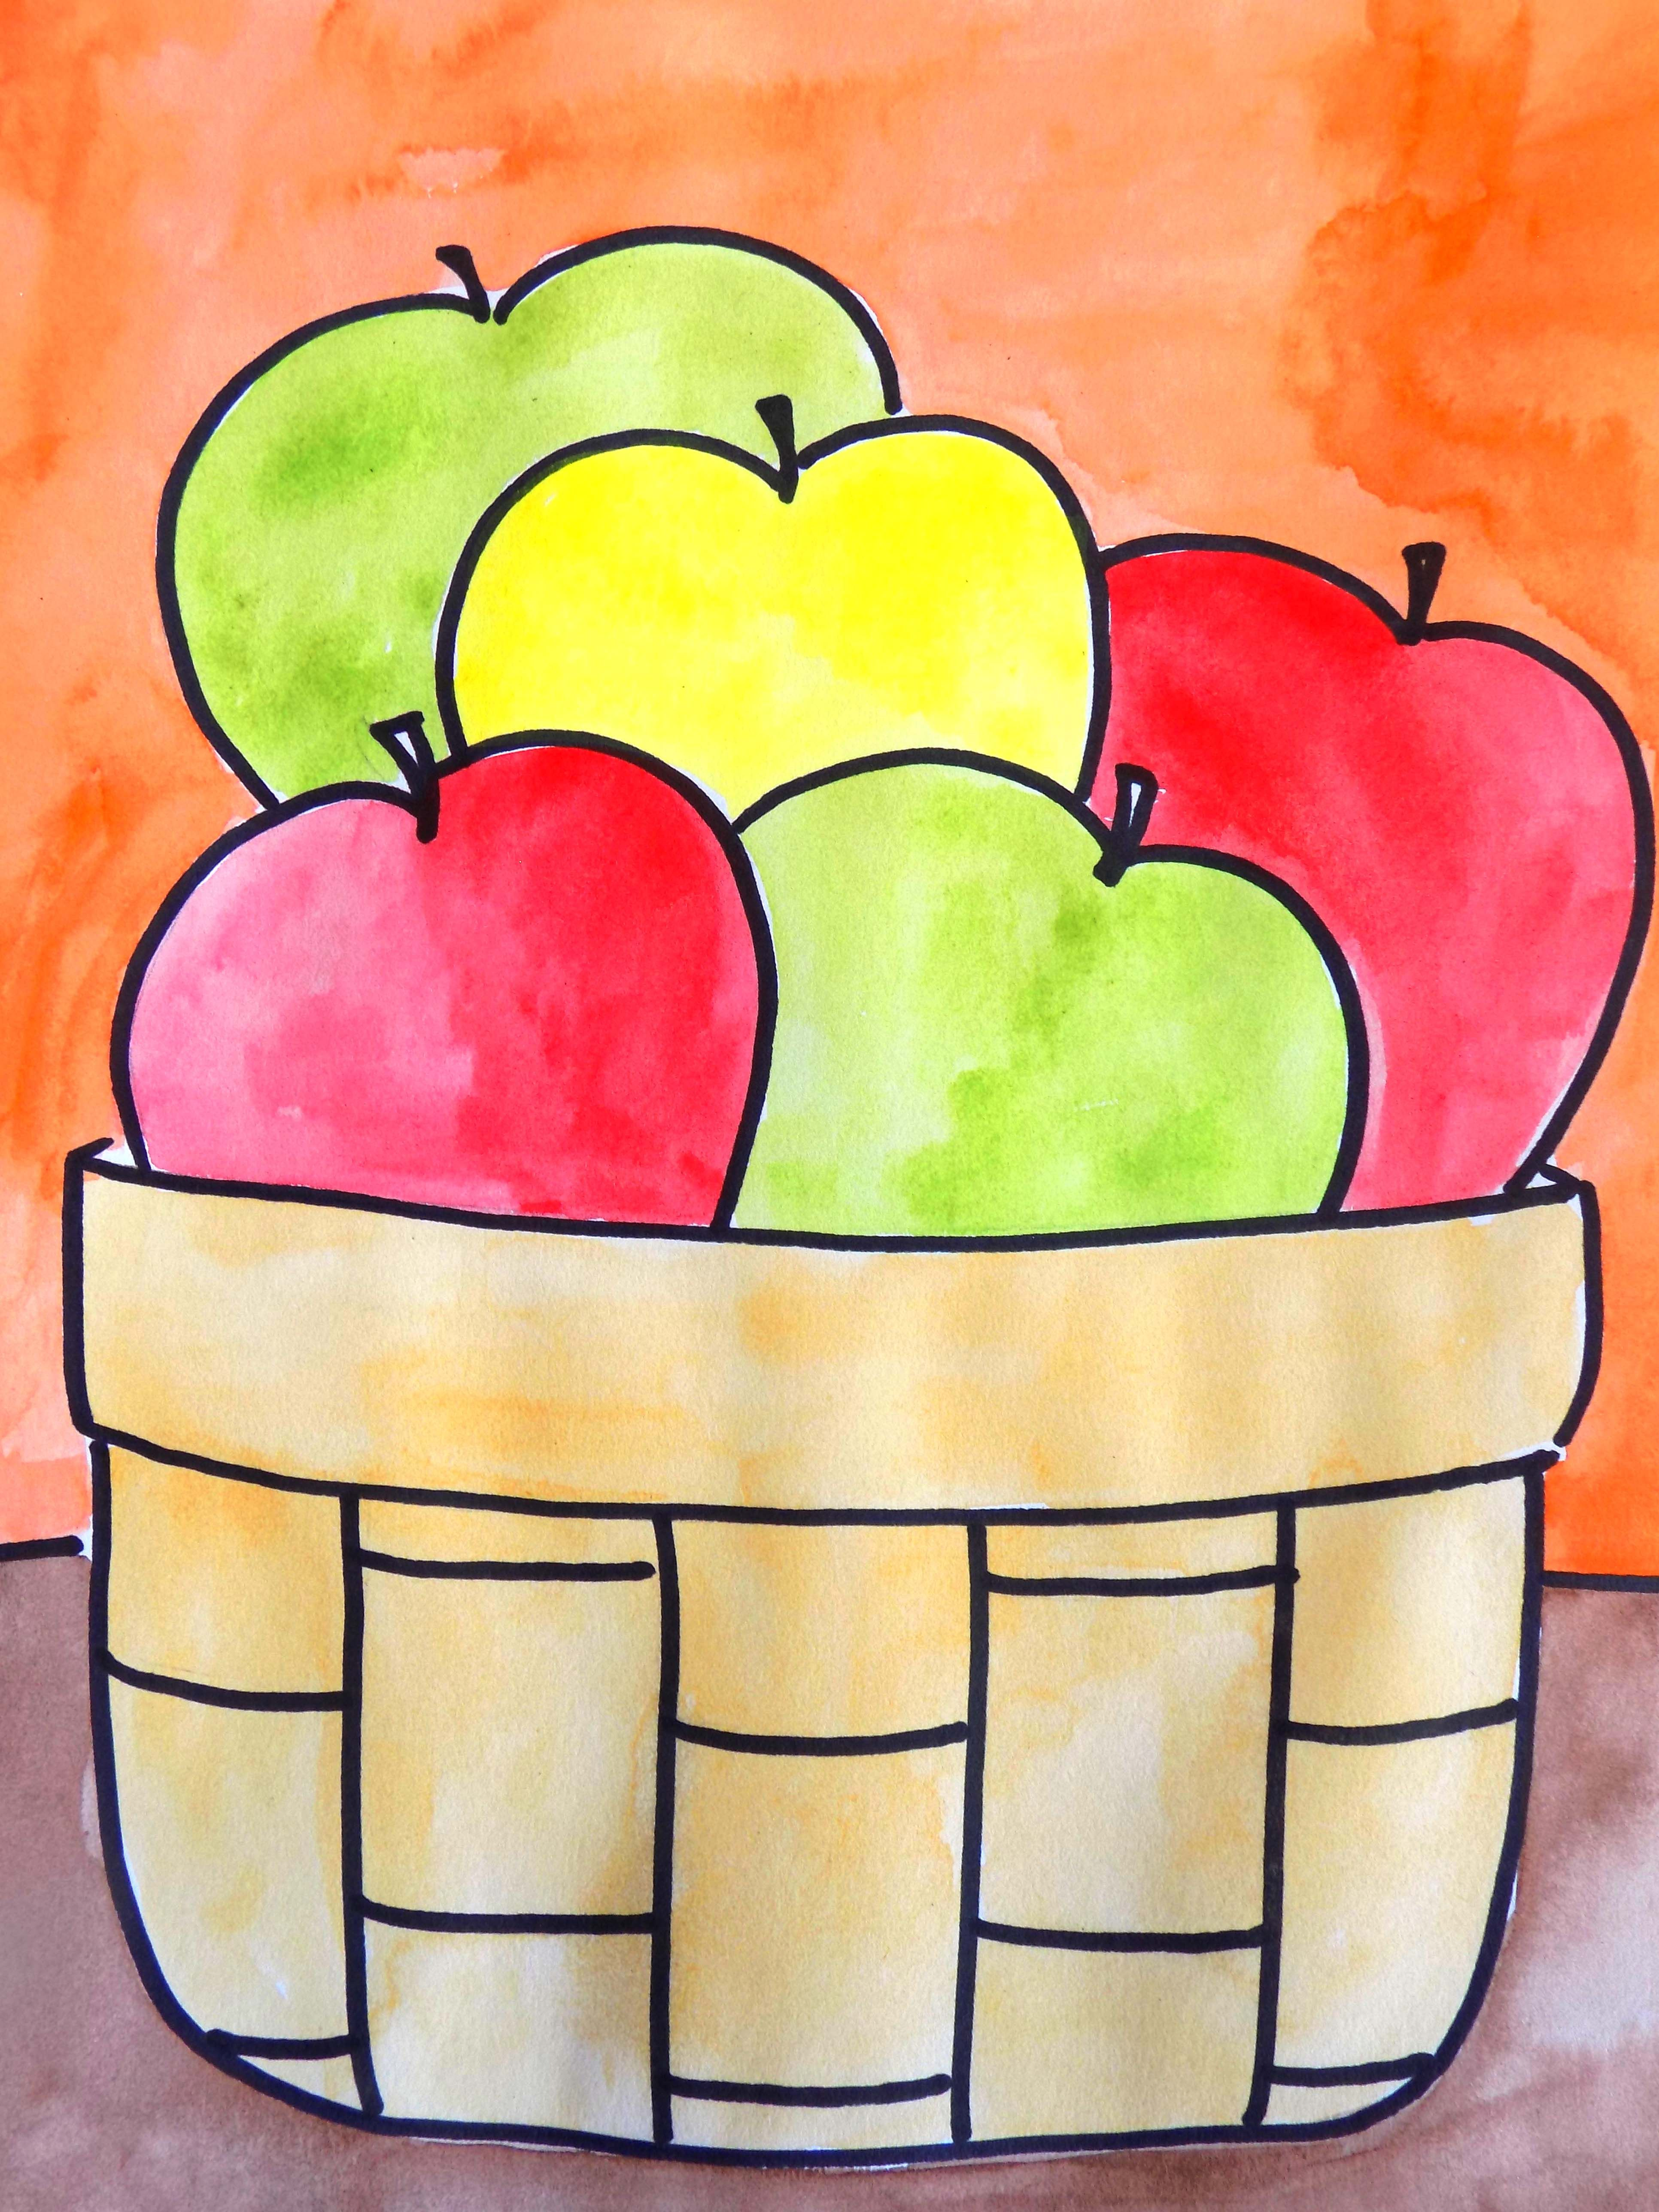 Apple perspective lesson art art drawings for kids